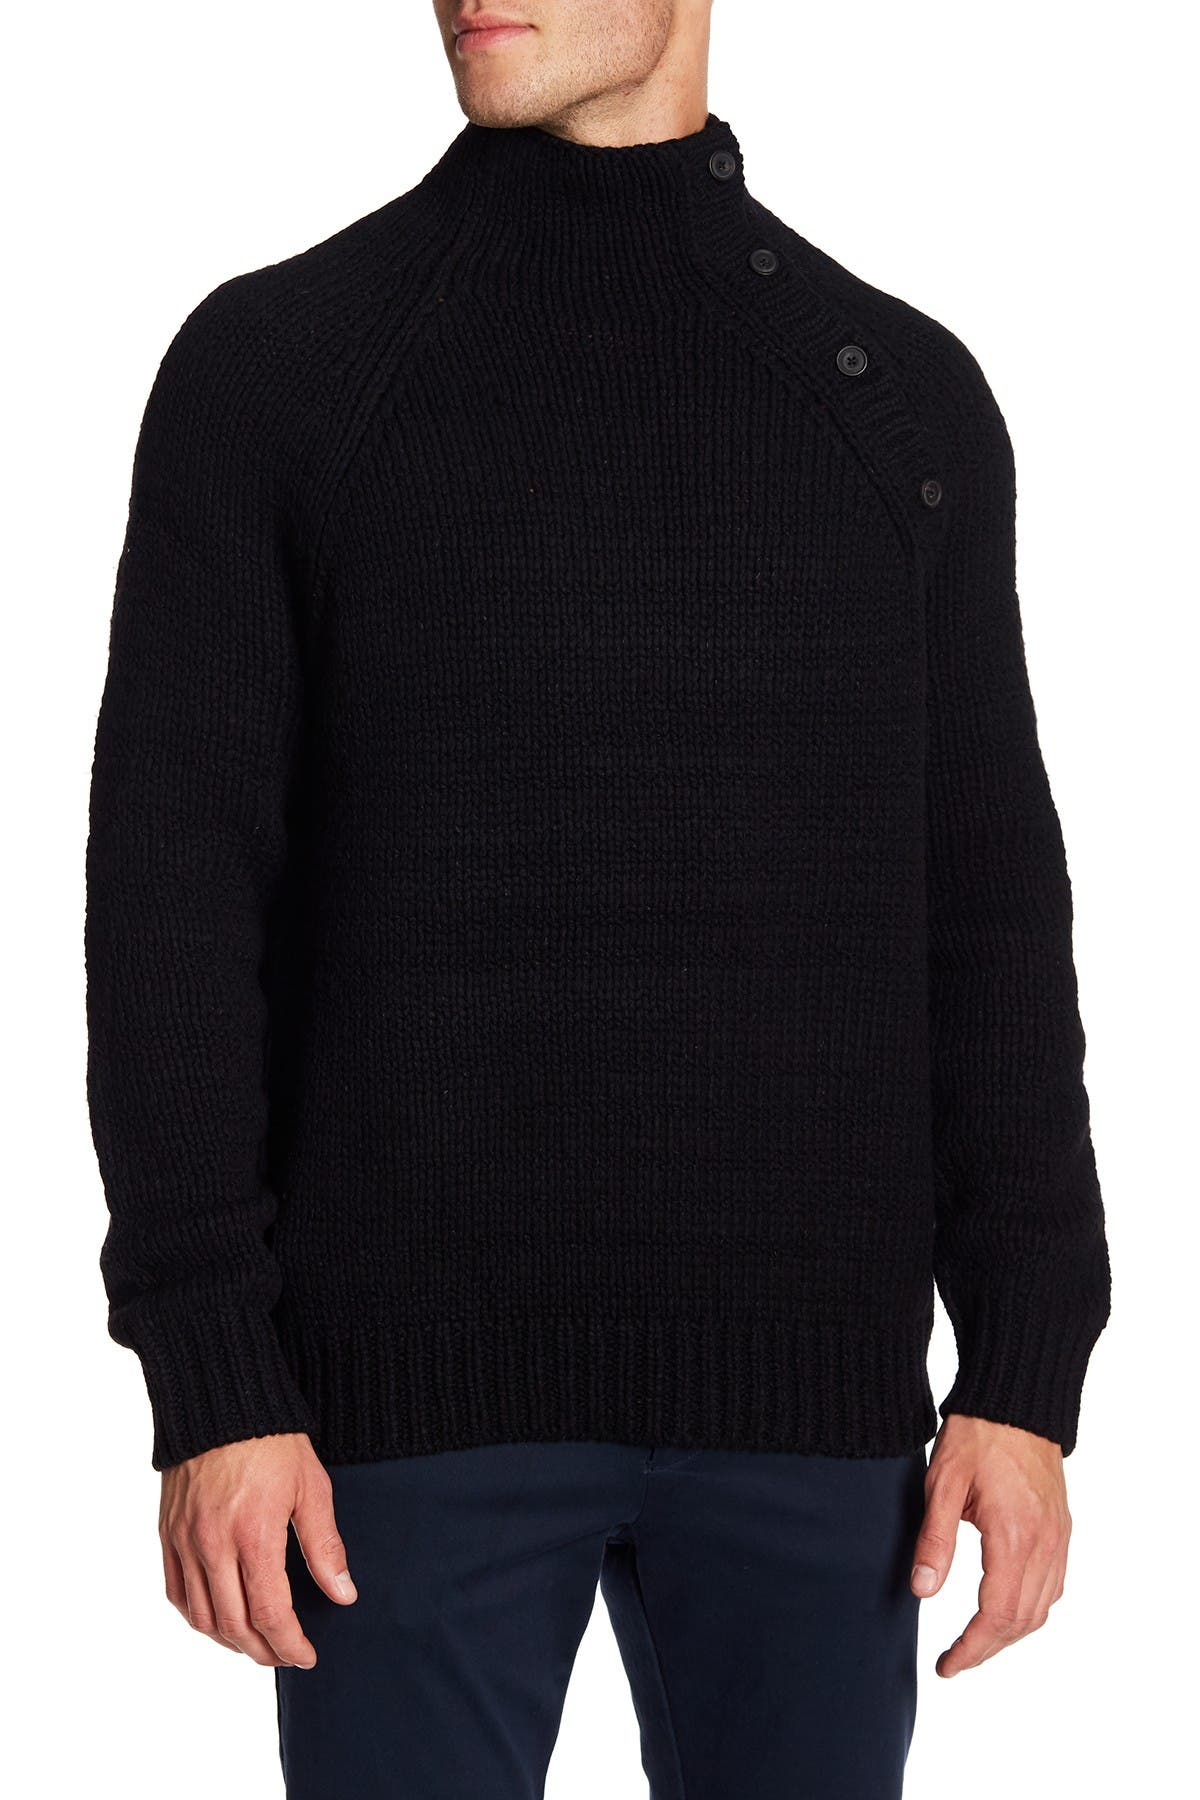 Image of Vince Button Neck Wool Blend Knit Sweater